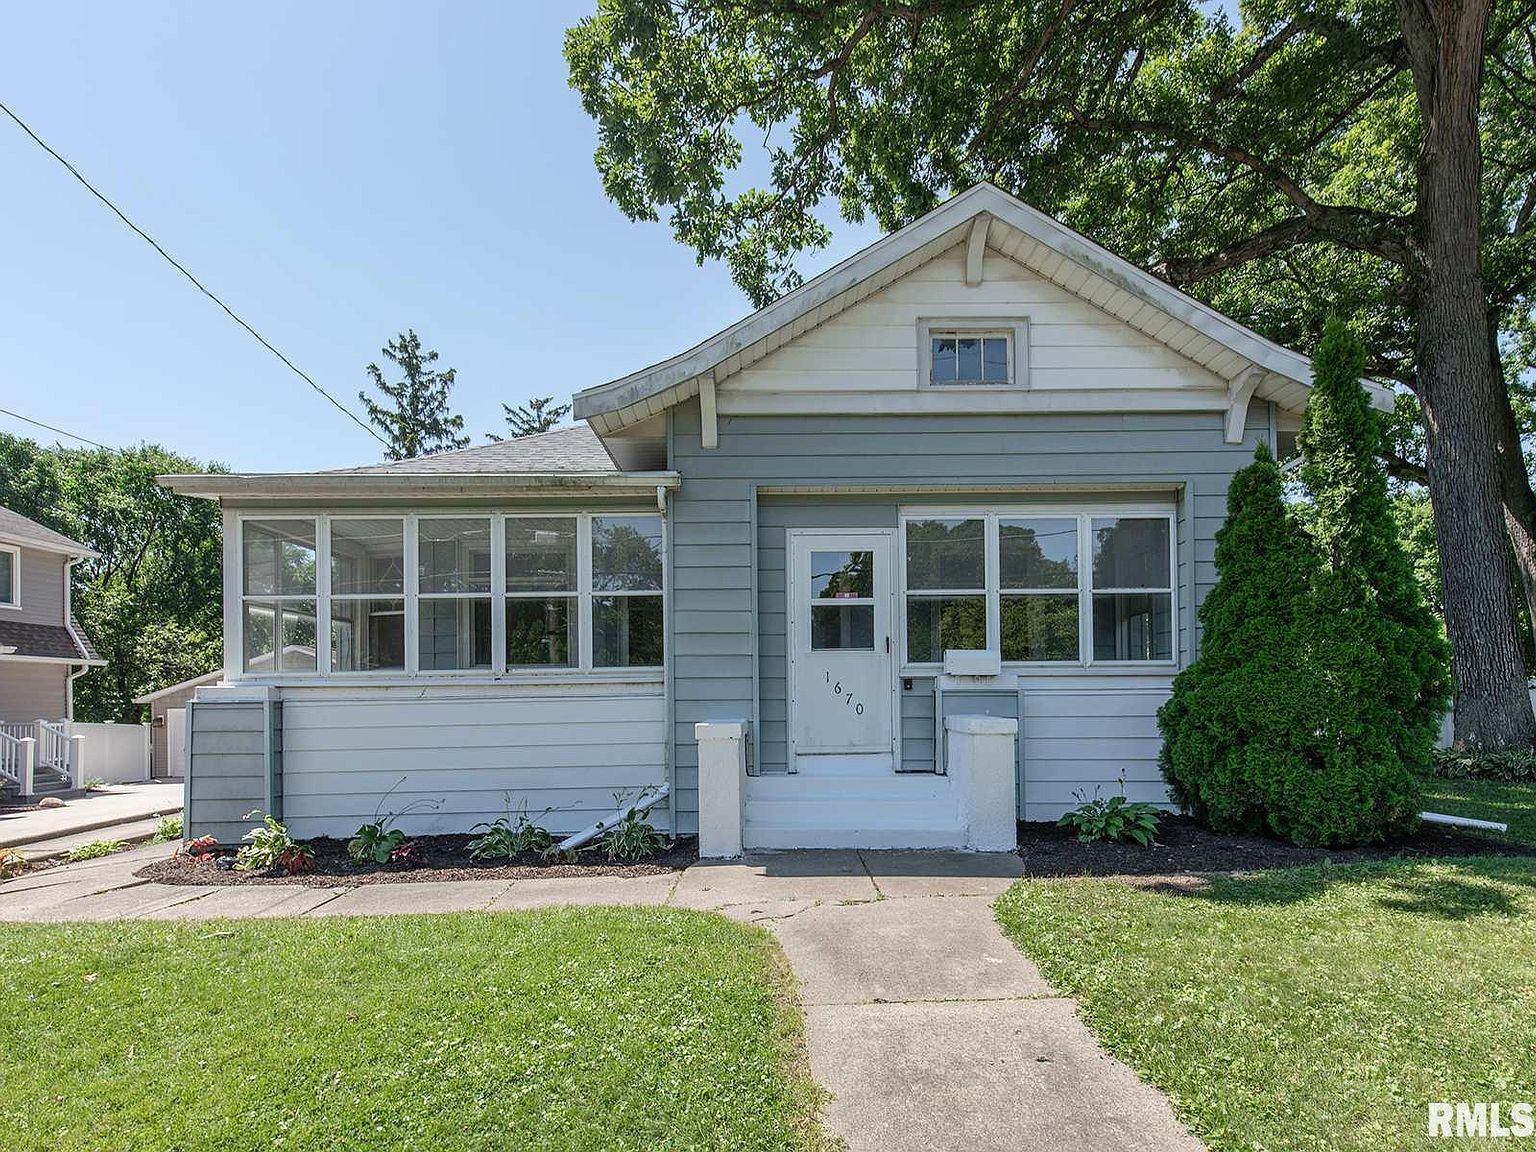 1670 30th Ave Moline Il 61265 Zillow